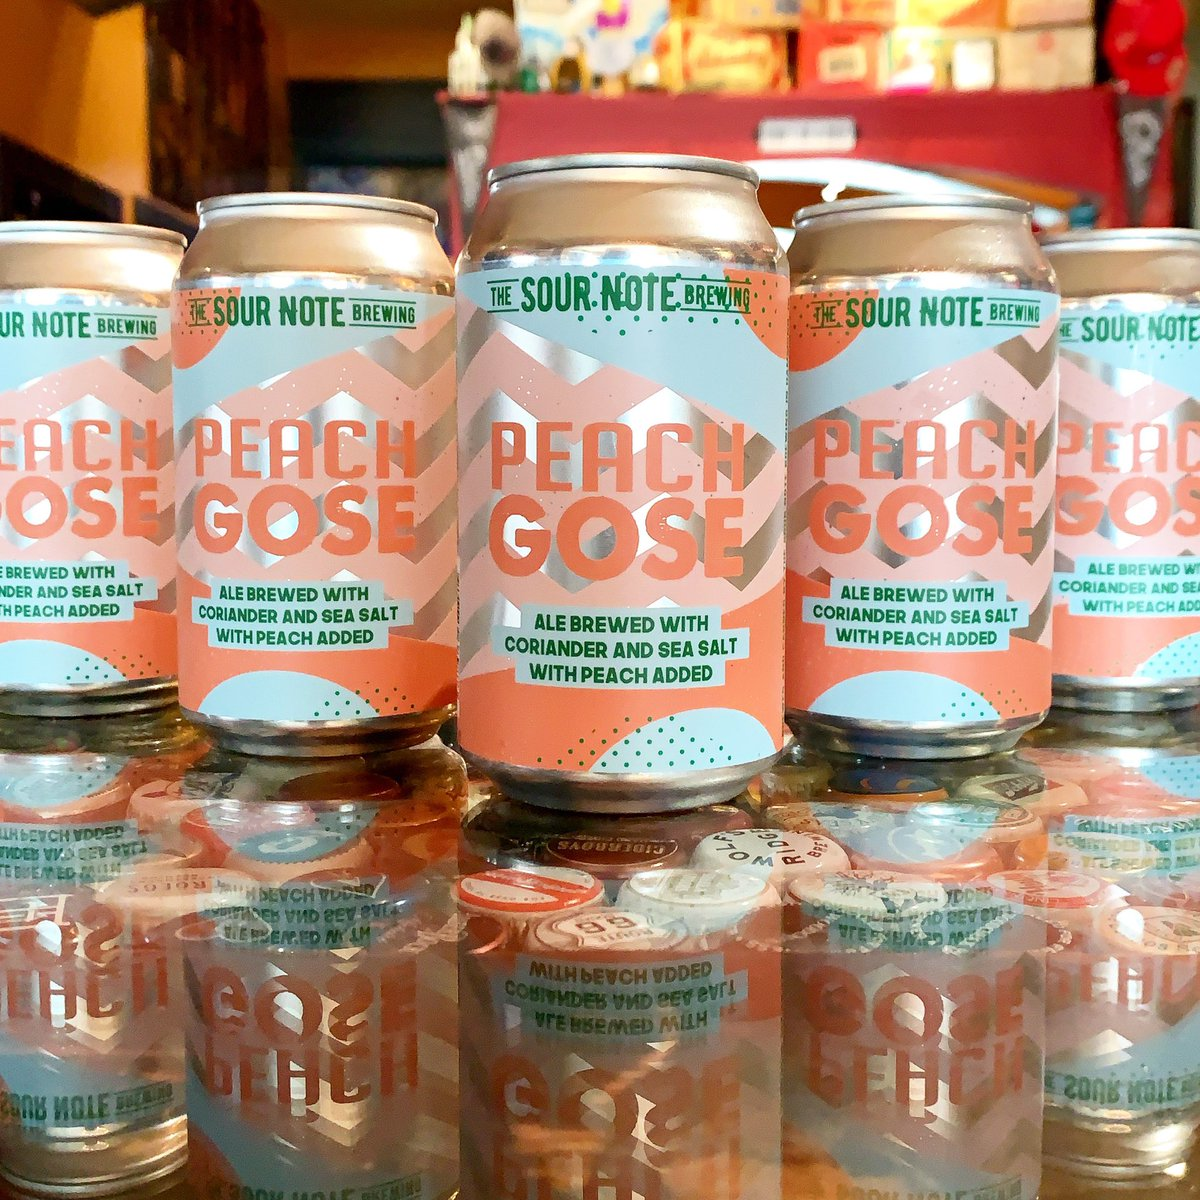 New Gose! @TheSourNoteBrew Peach Gose is here! #beer #craftbeer #gose #peach #sourbeer #getsome #DYT #TheBarrelHouse #Dayton #Ohio #Daytonlovesbeer https://t.co/UPoylONQFq